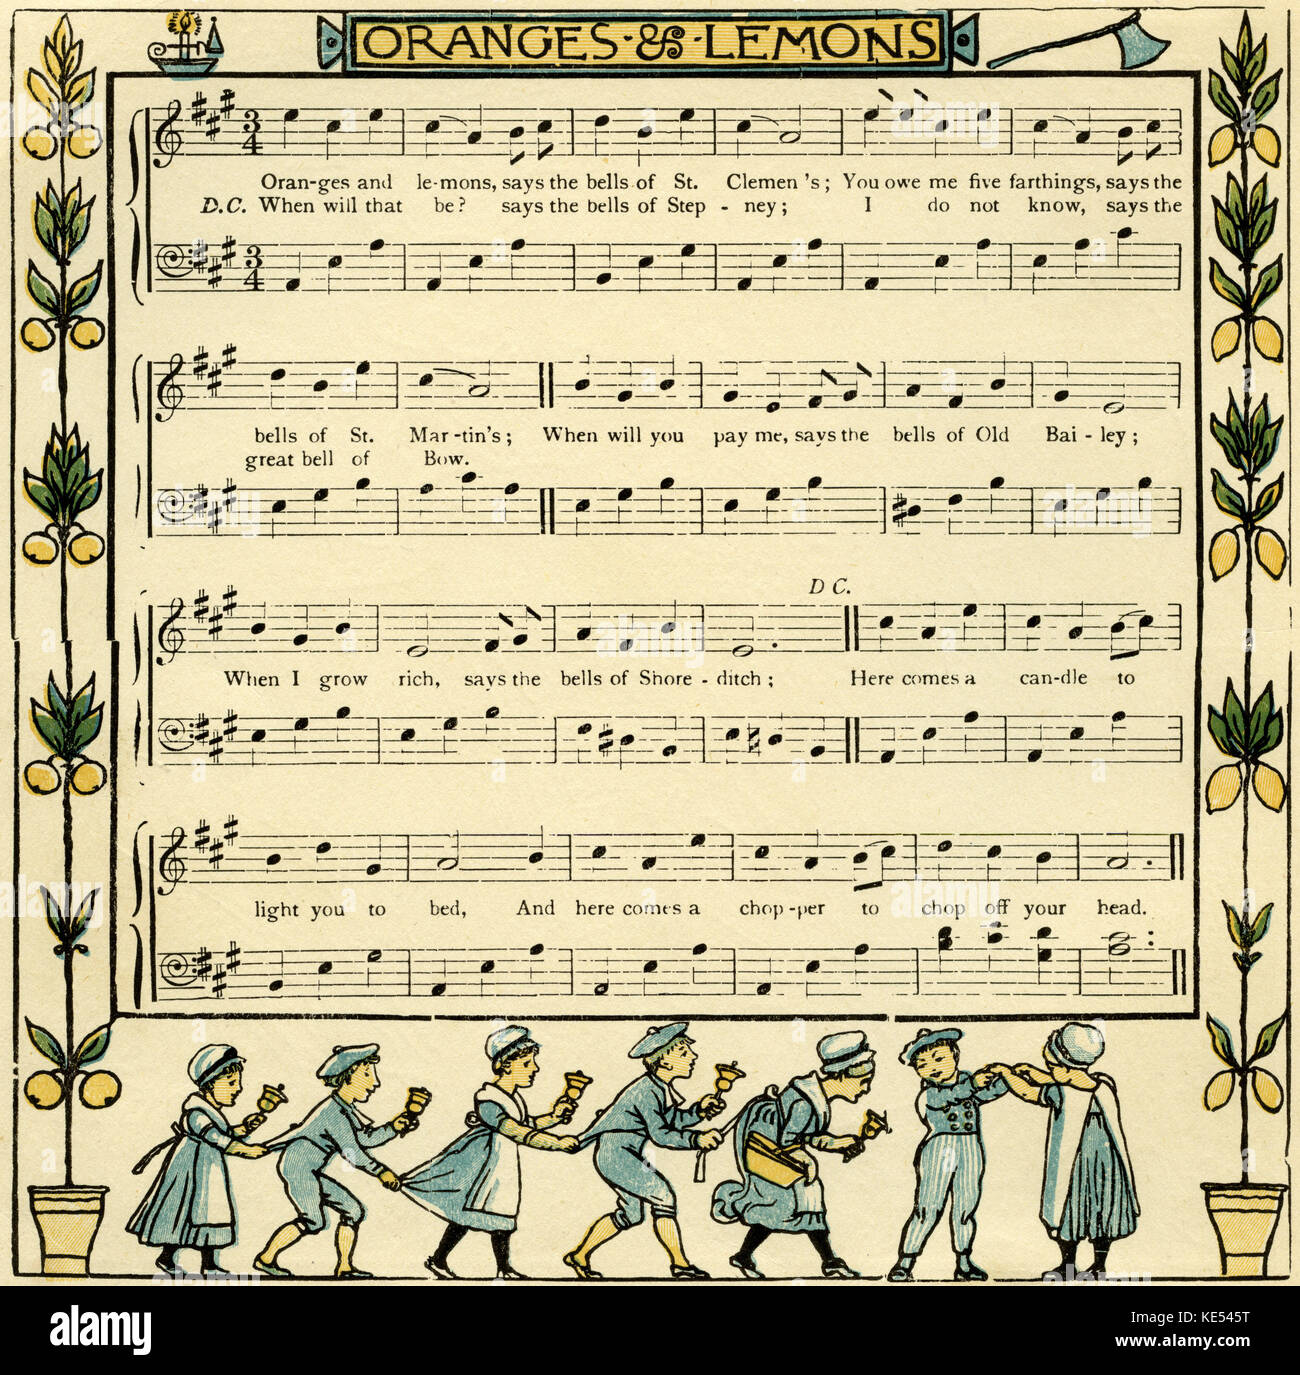 Oranges and lemons, nursery rhyme illustration (1877) by Walter Crane. English artist of Arts and Crafts movement, - Stock Image